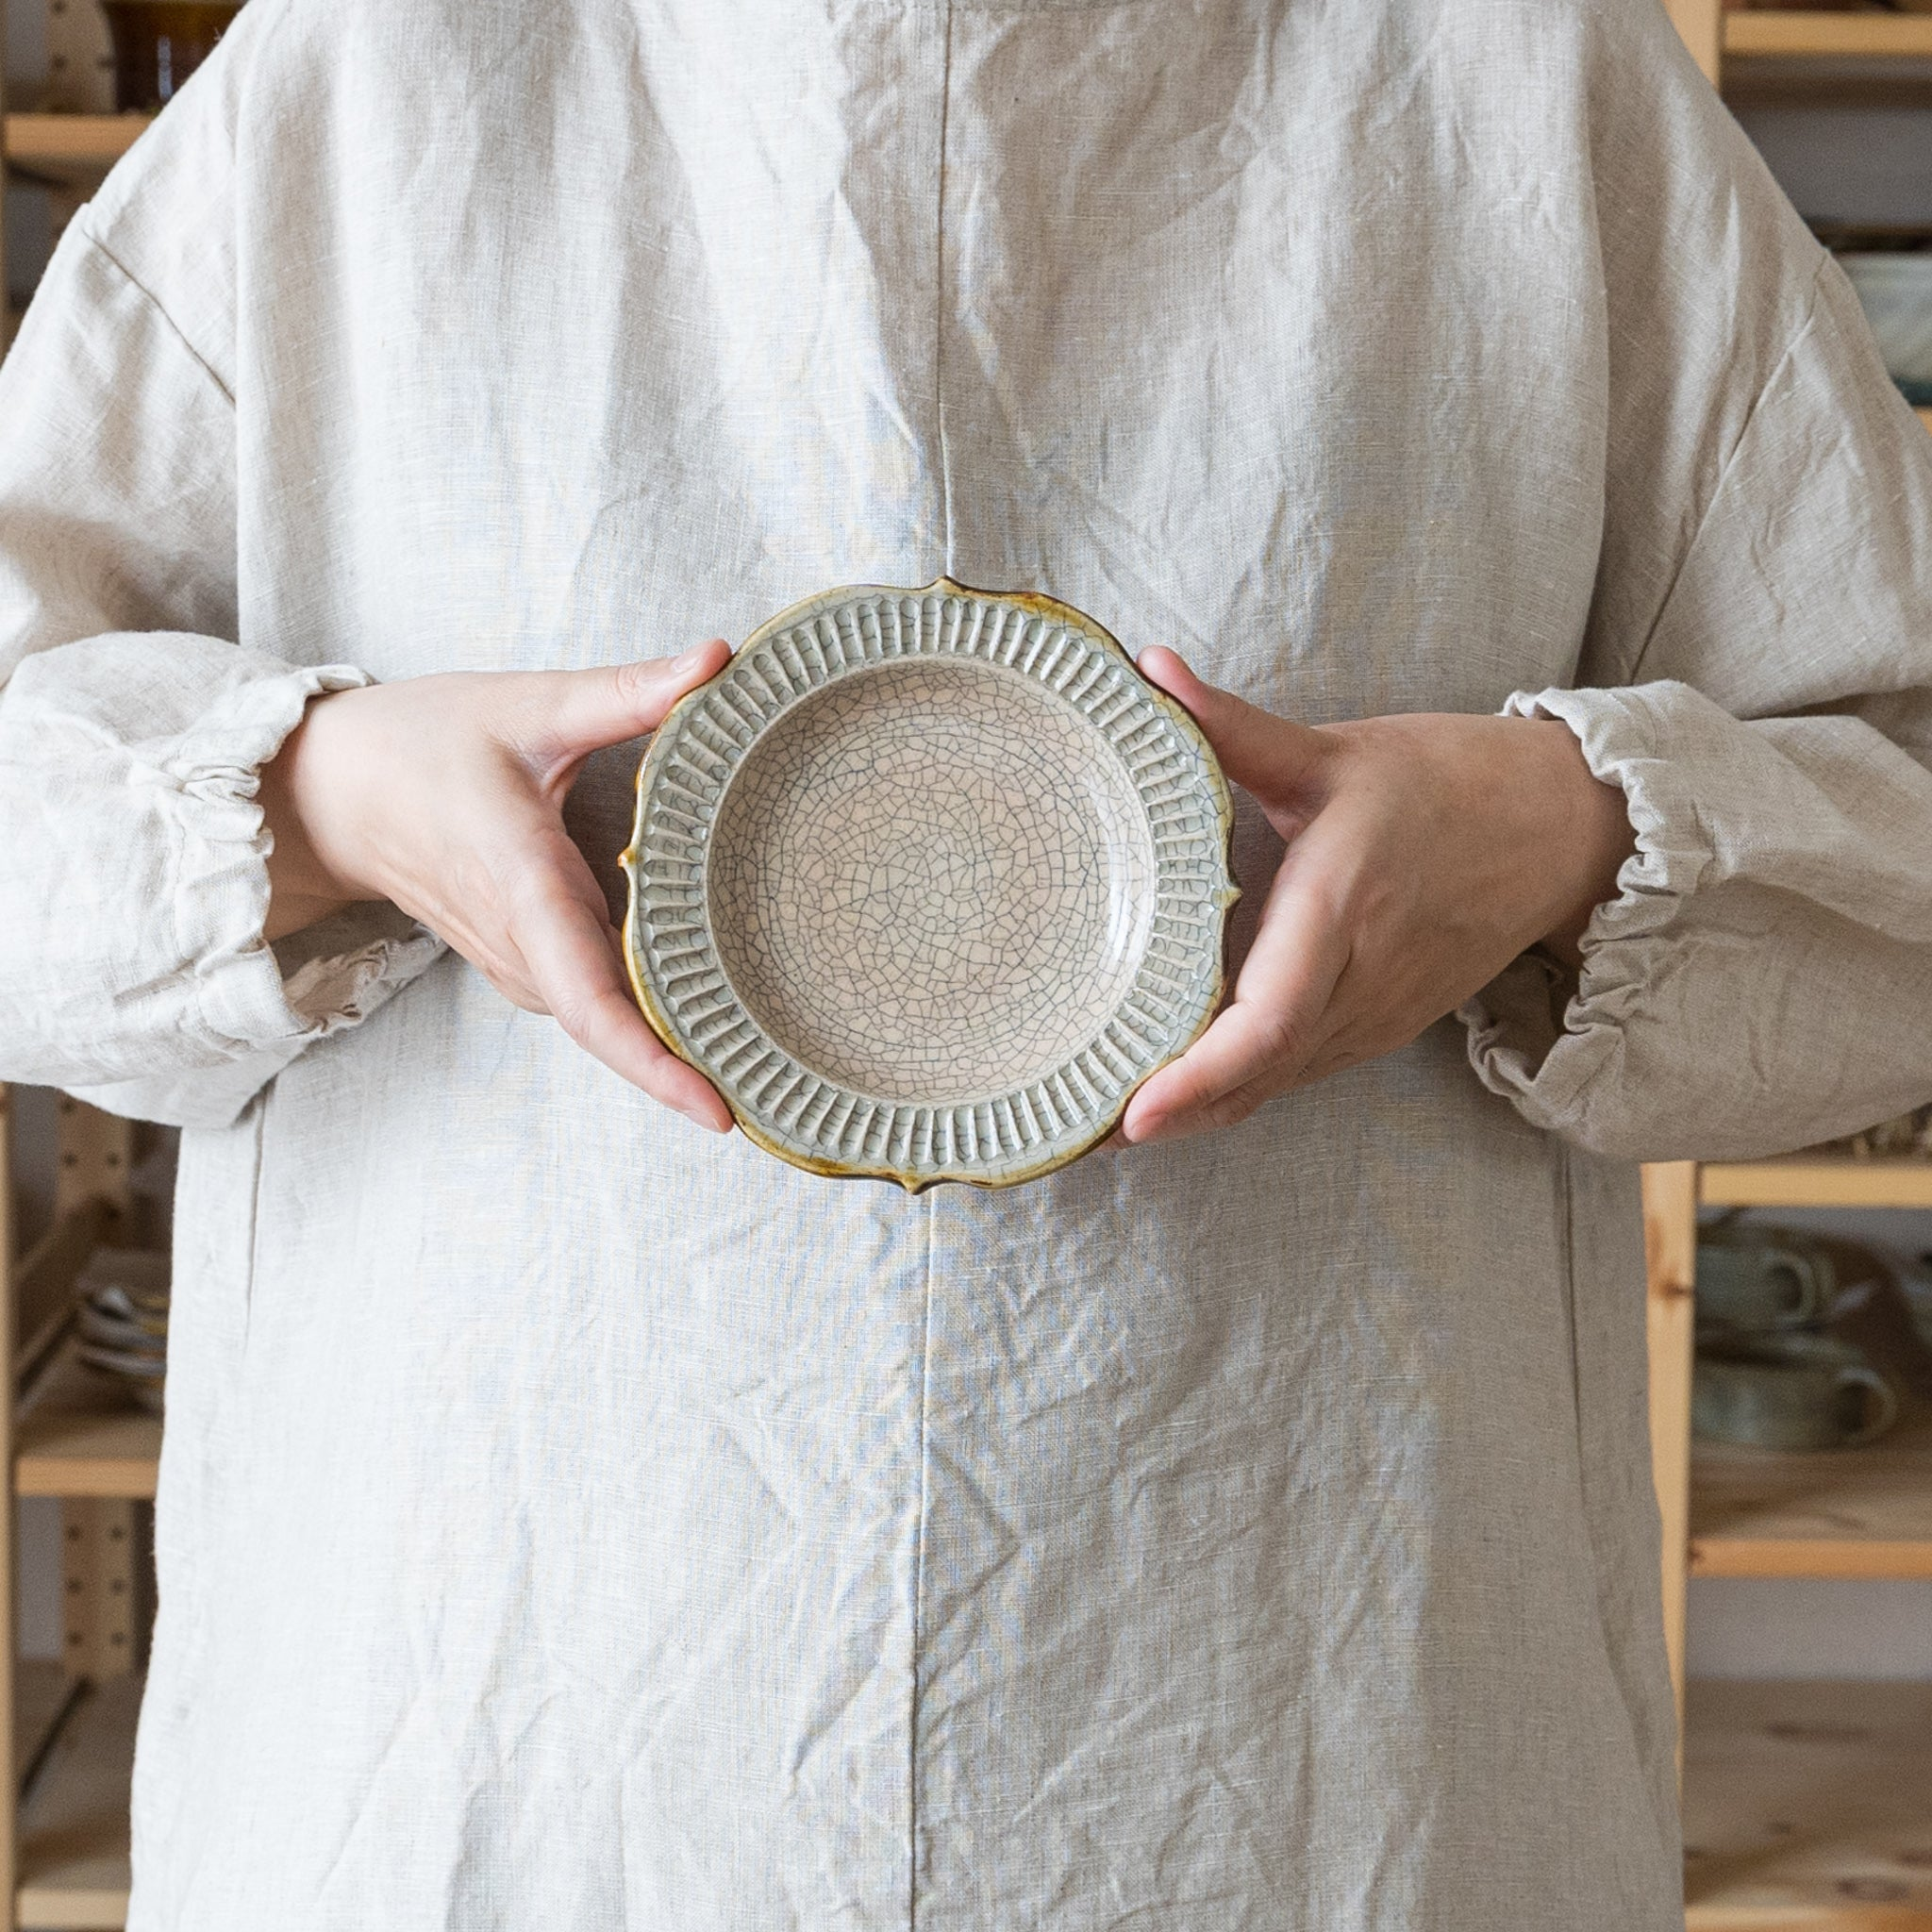 It is a craft's kraft's inking penetration ring flower tray that delivers a dining table